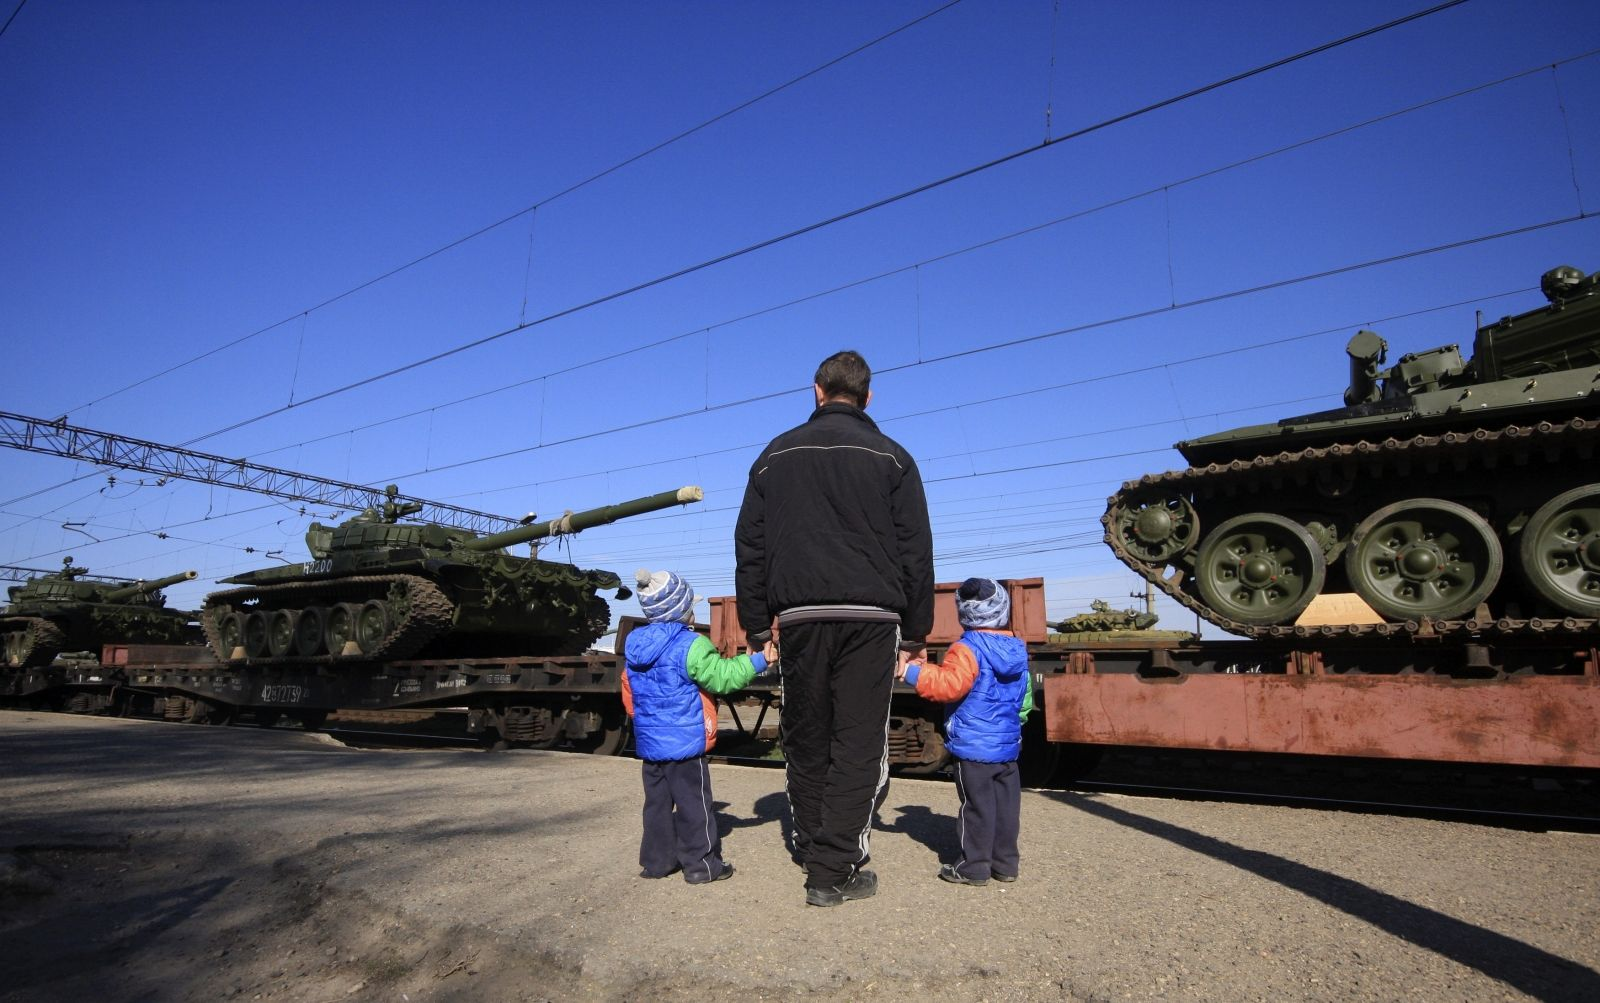 Russian military Disneyland to open